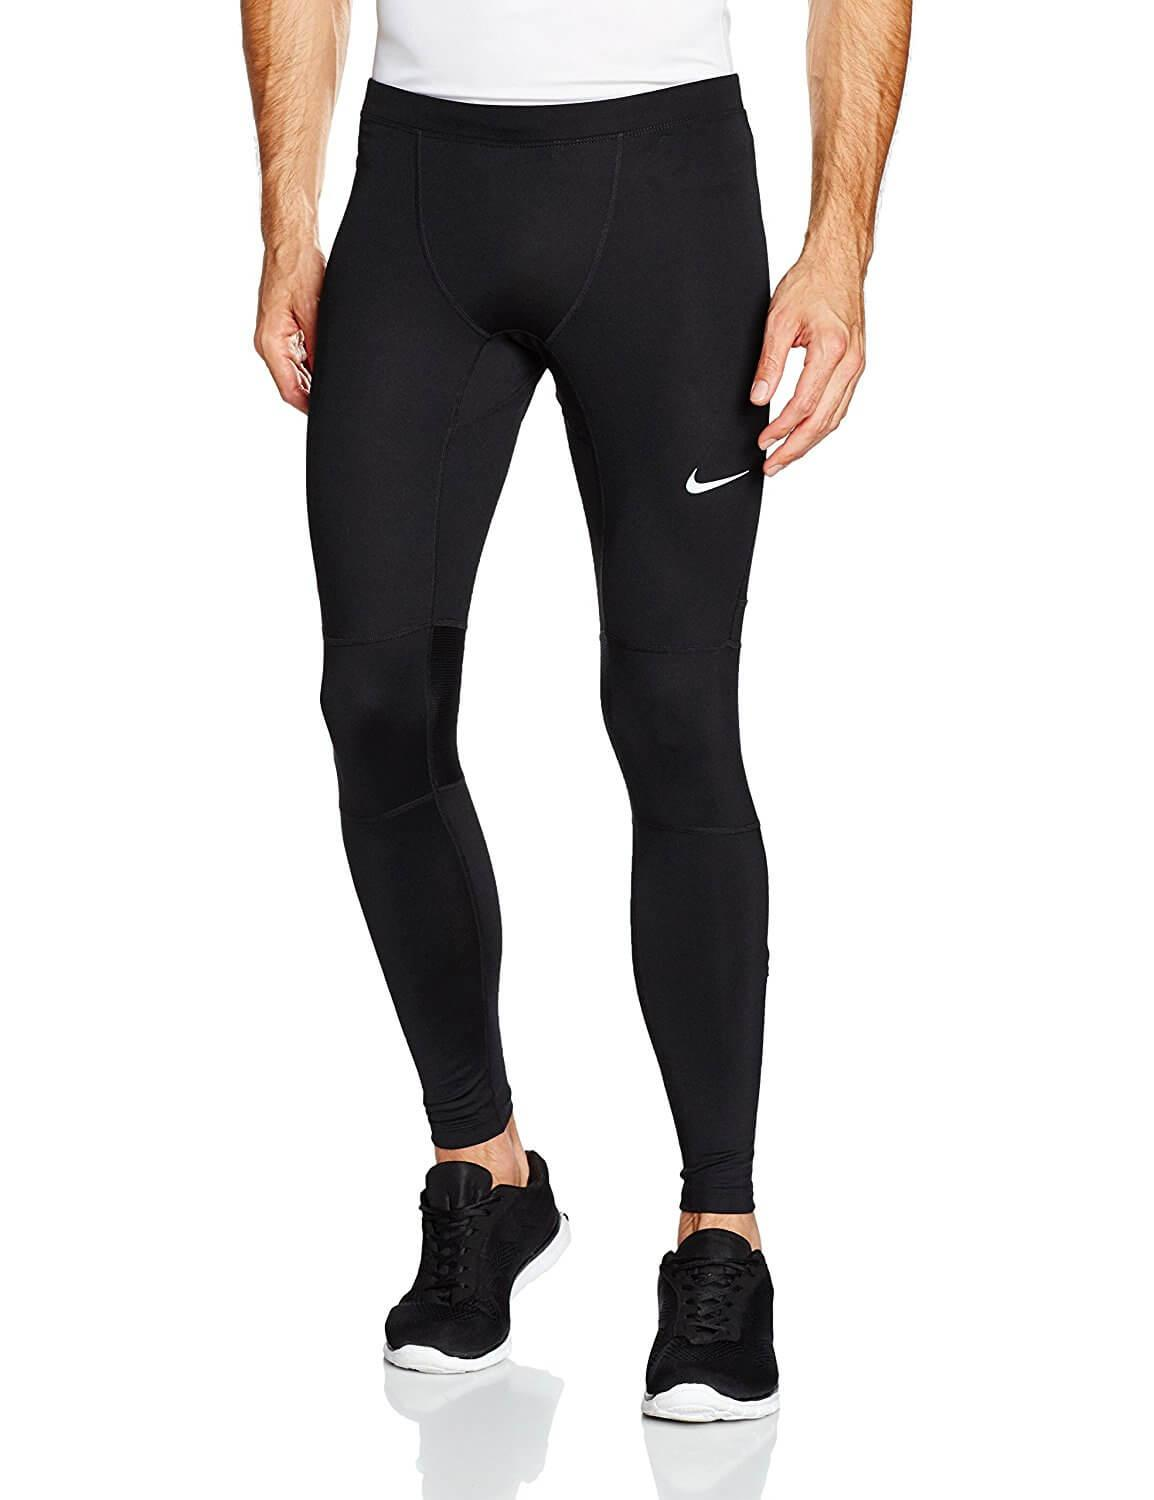 778223acafc8b Best Nike Running Tights Reviewed in 2019 | RunnerClick